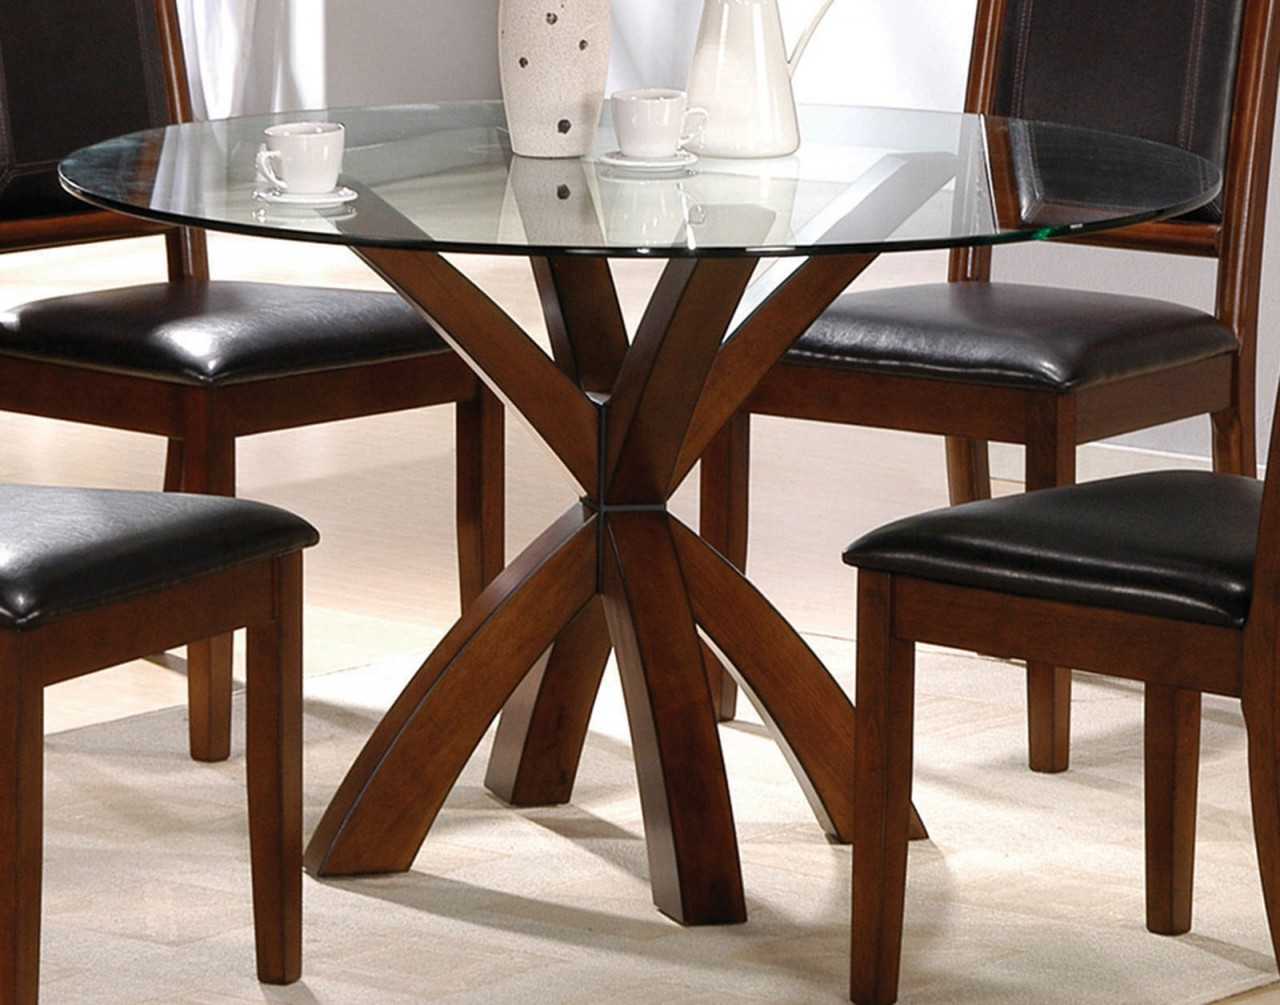 Modern dining table designs with glass top - Interior Furniture Of Round Dining Table With Glass On Top Surface And Black Four Chairs